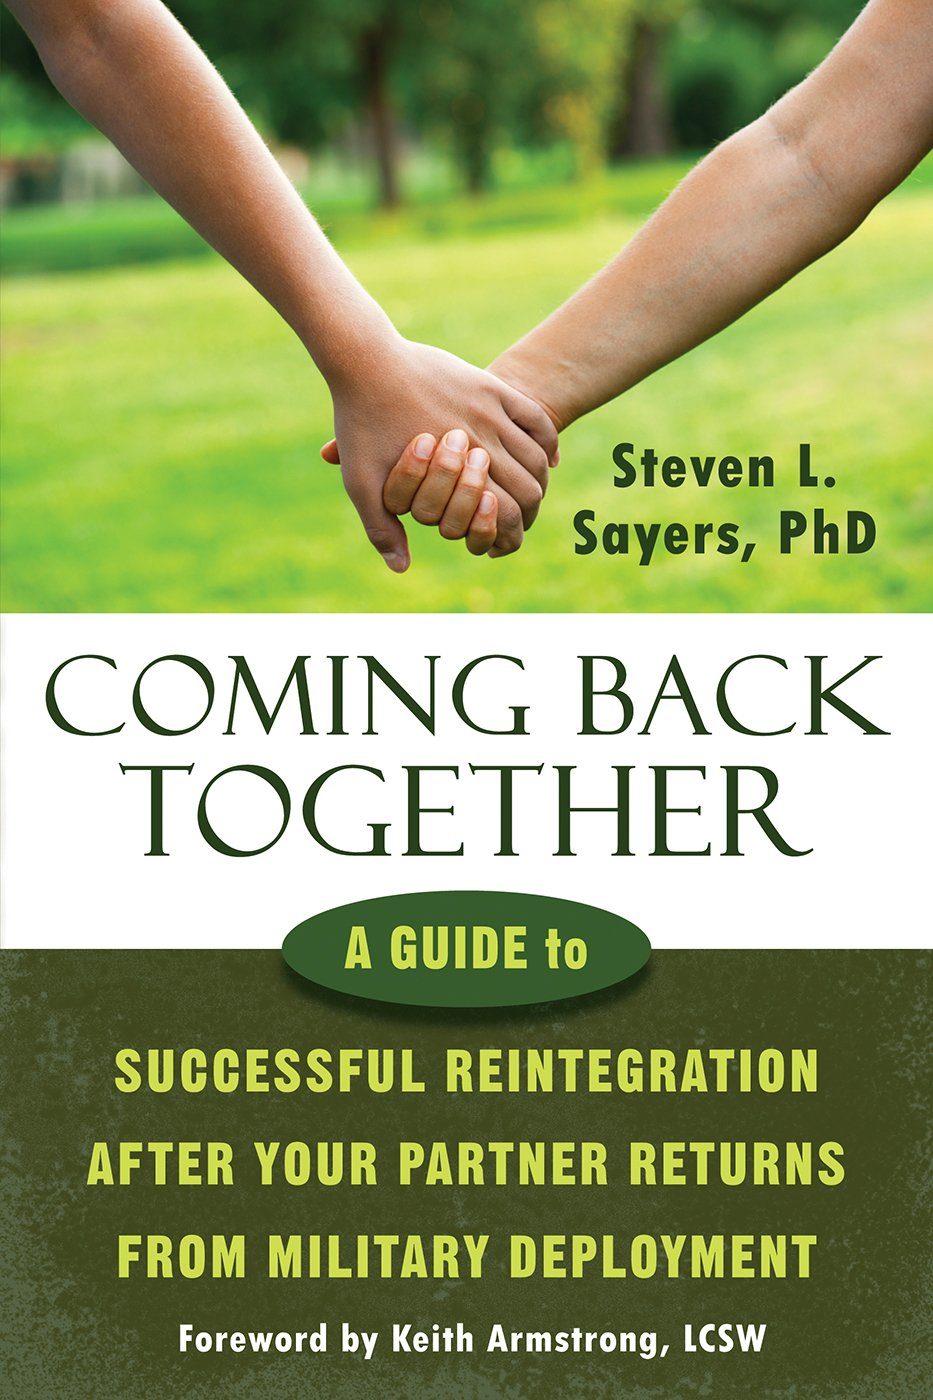 Coming Back Together: A Guide to Successful Reintegration After Your Partner Returns from Military Deployment